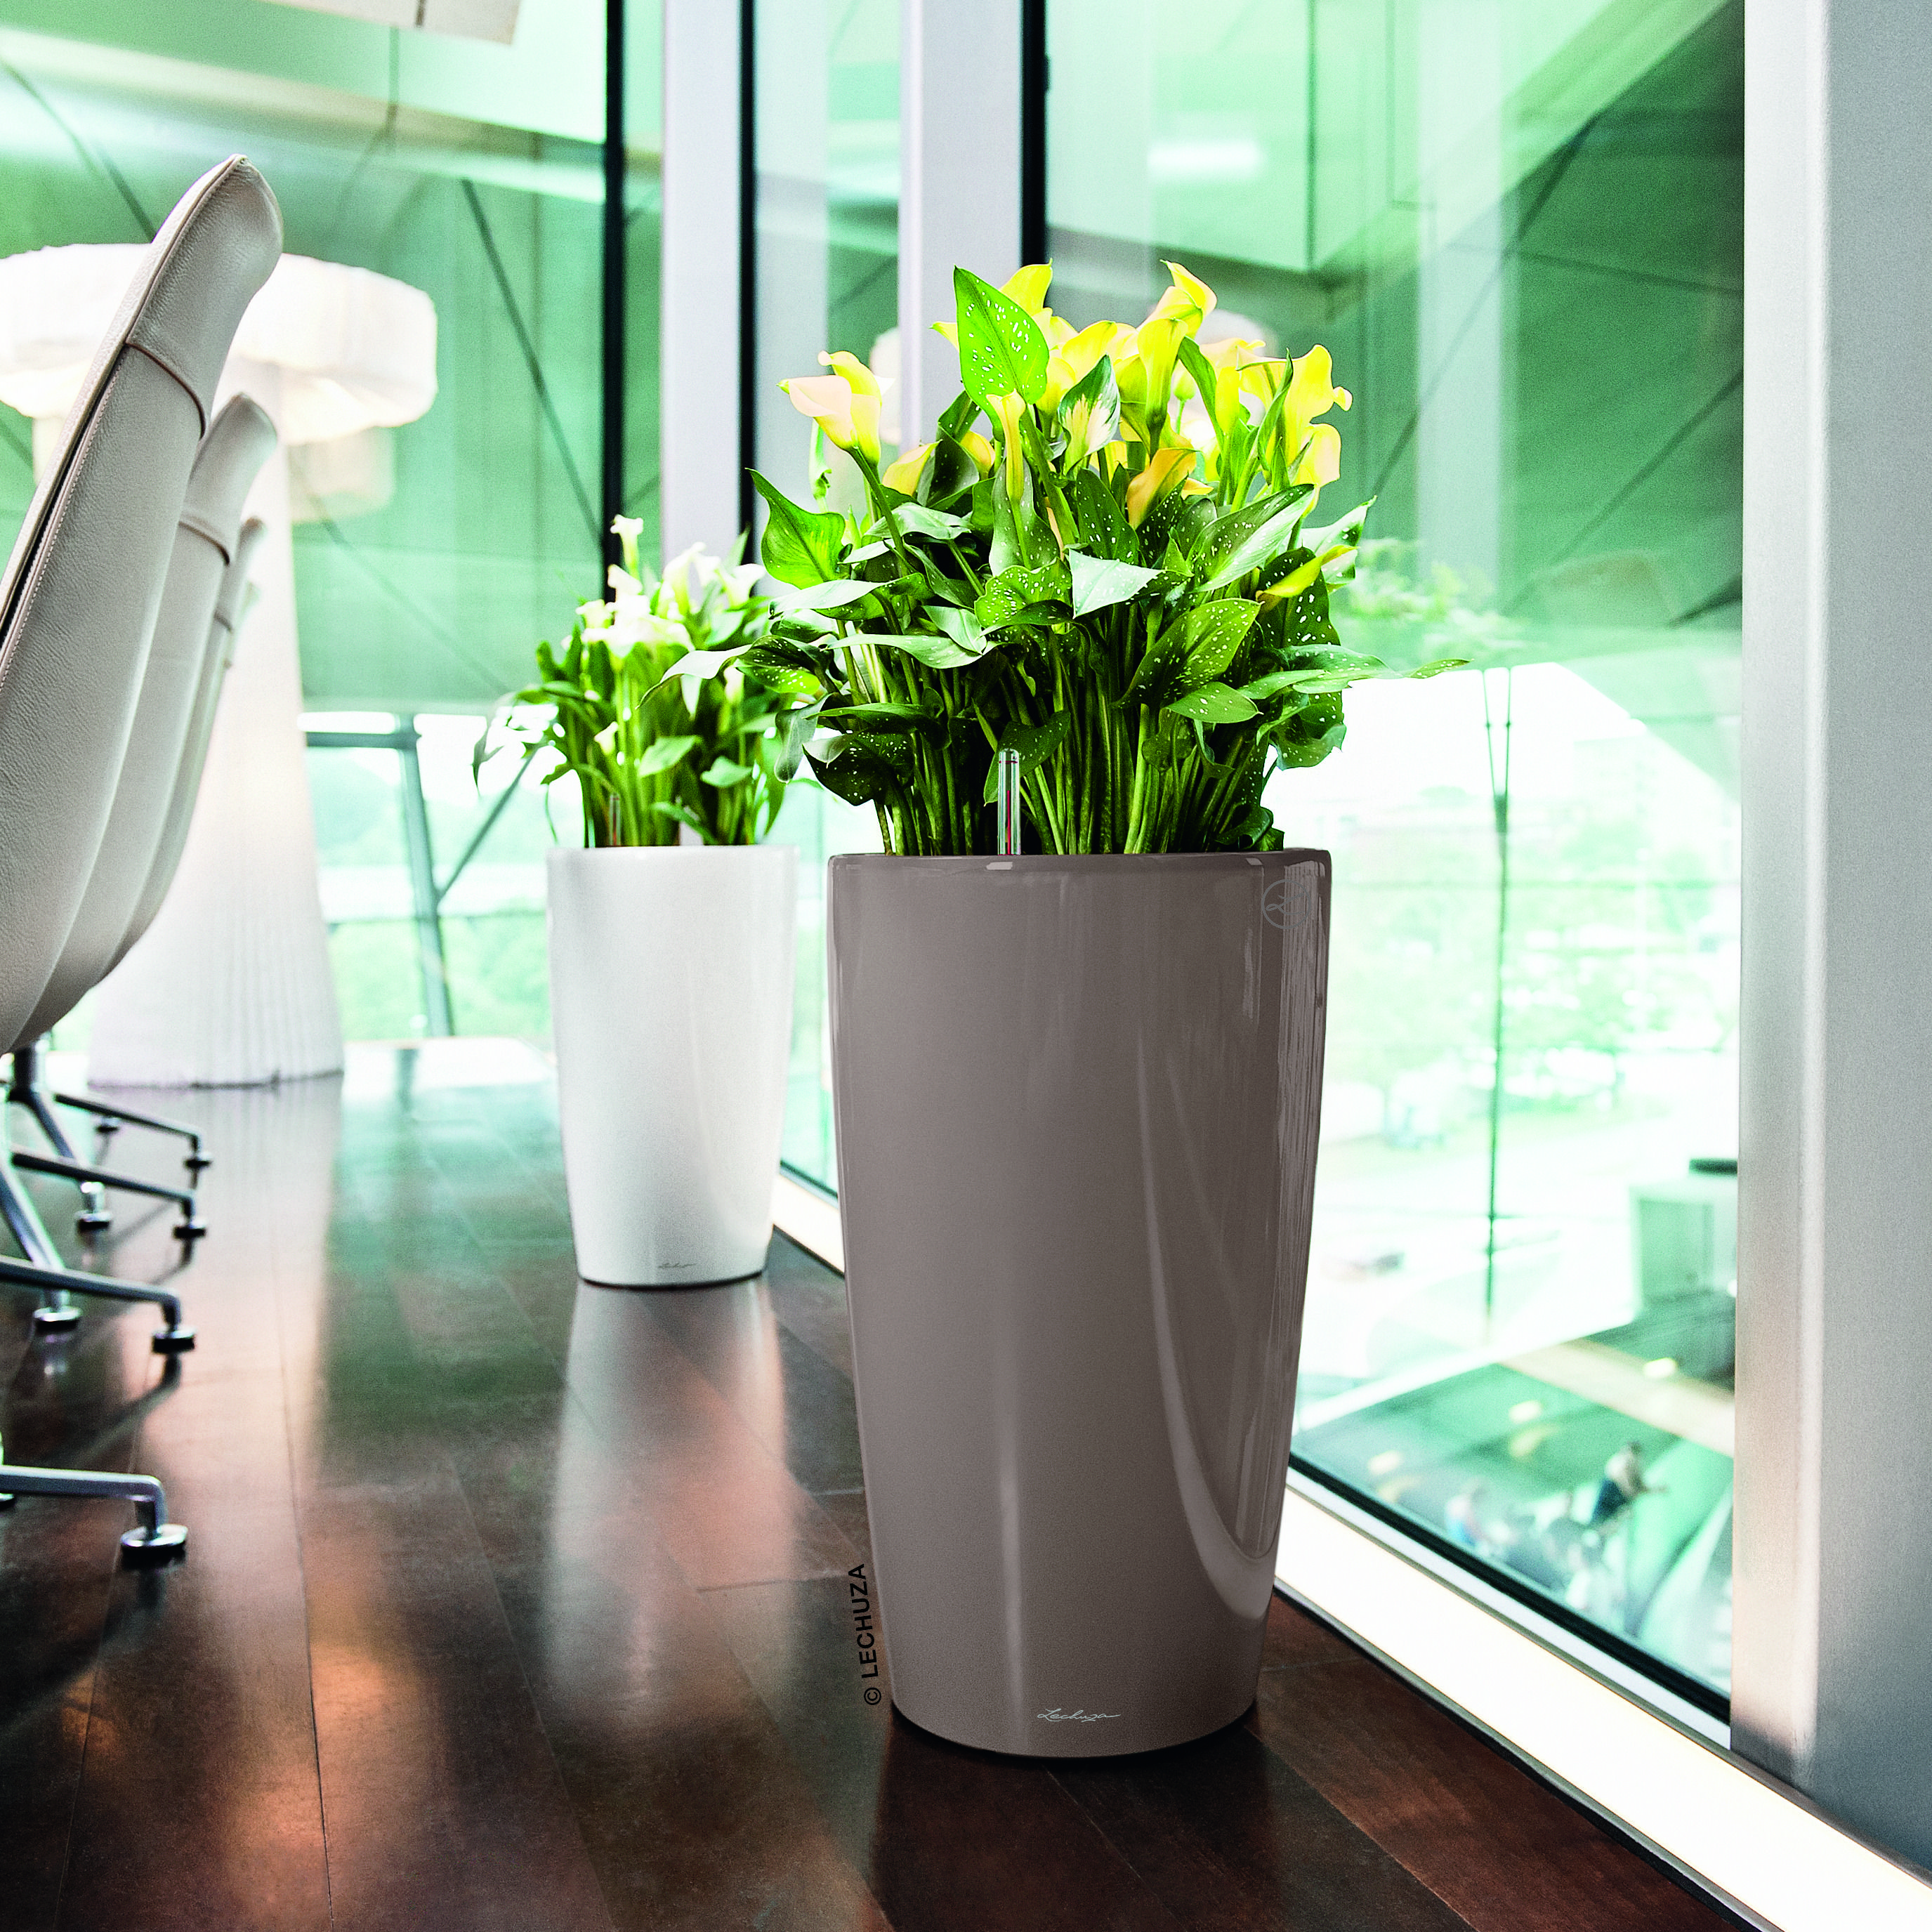 Lechuza Rondo Supplied By Koberg Planters Steel Planters Plastic Planter Boxes